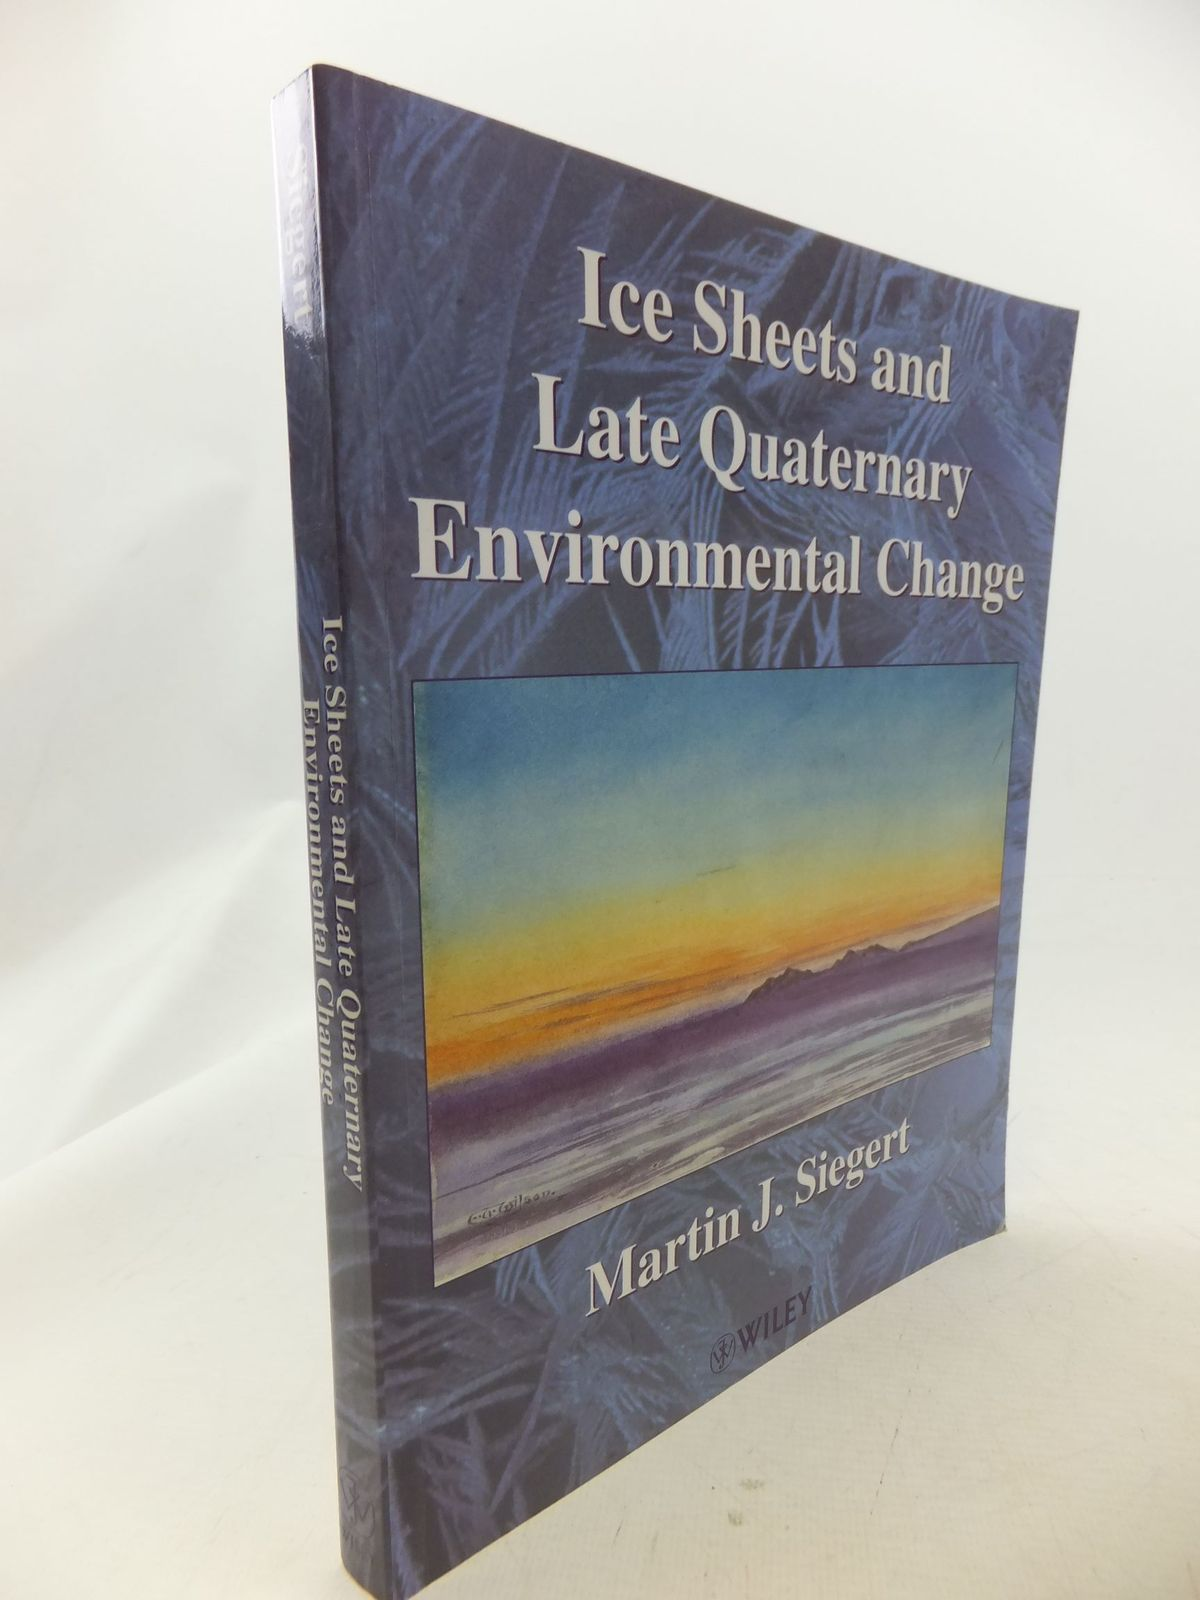 Photo of ICE SHEETS AND LATE QUATERNARY ENVIRONMENTAL CHANGE written by Siegert, Martin J. published by John Wiley & Sons (STOCK CODE: 1710875)  for sale by Stella & Rose's Books